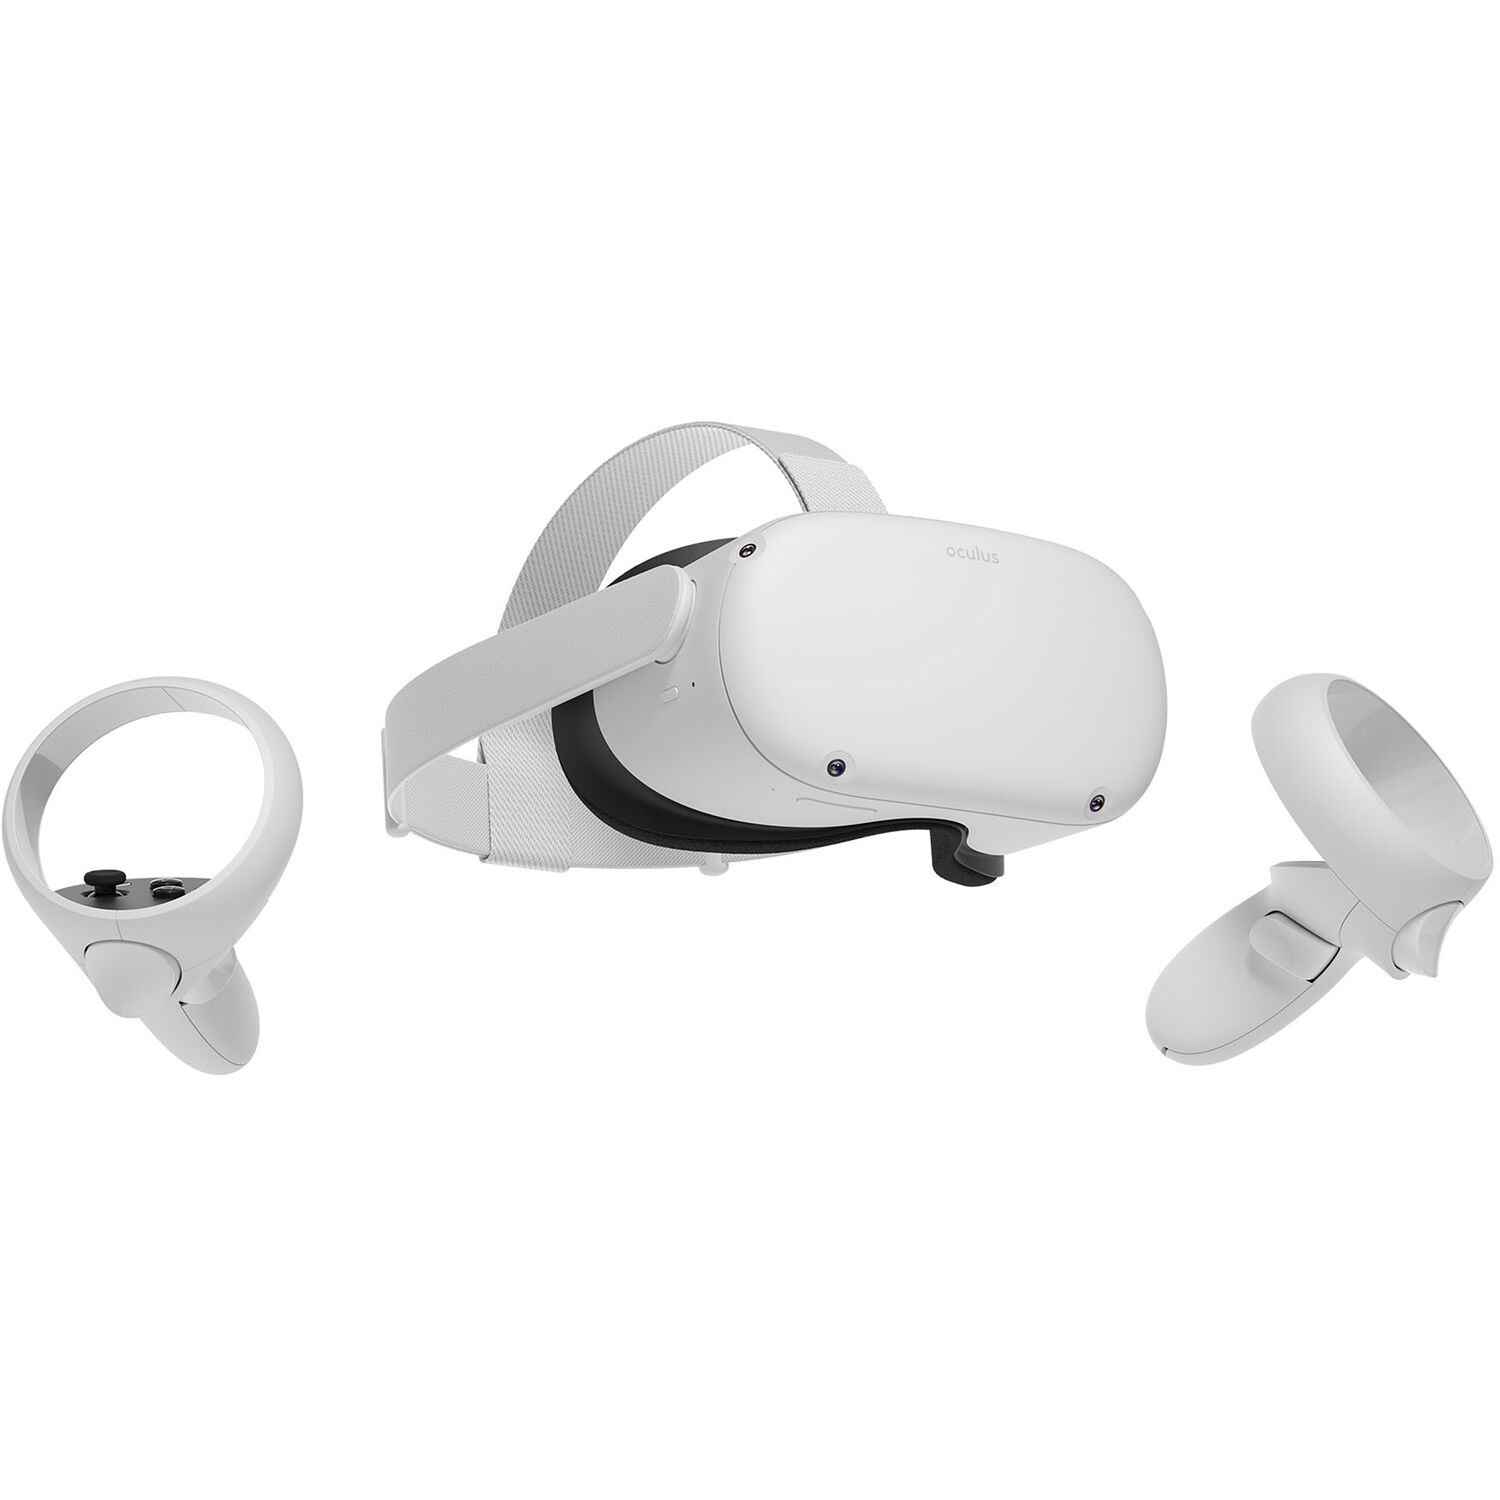 First VR learning and development experience for teams on Oculus Quest2 for Business